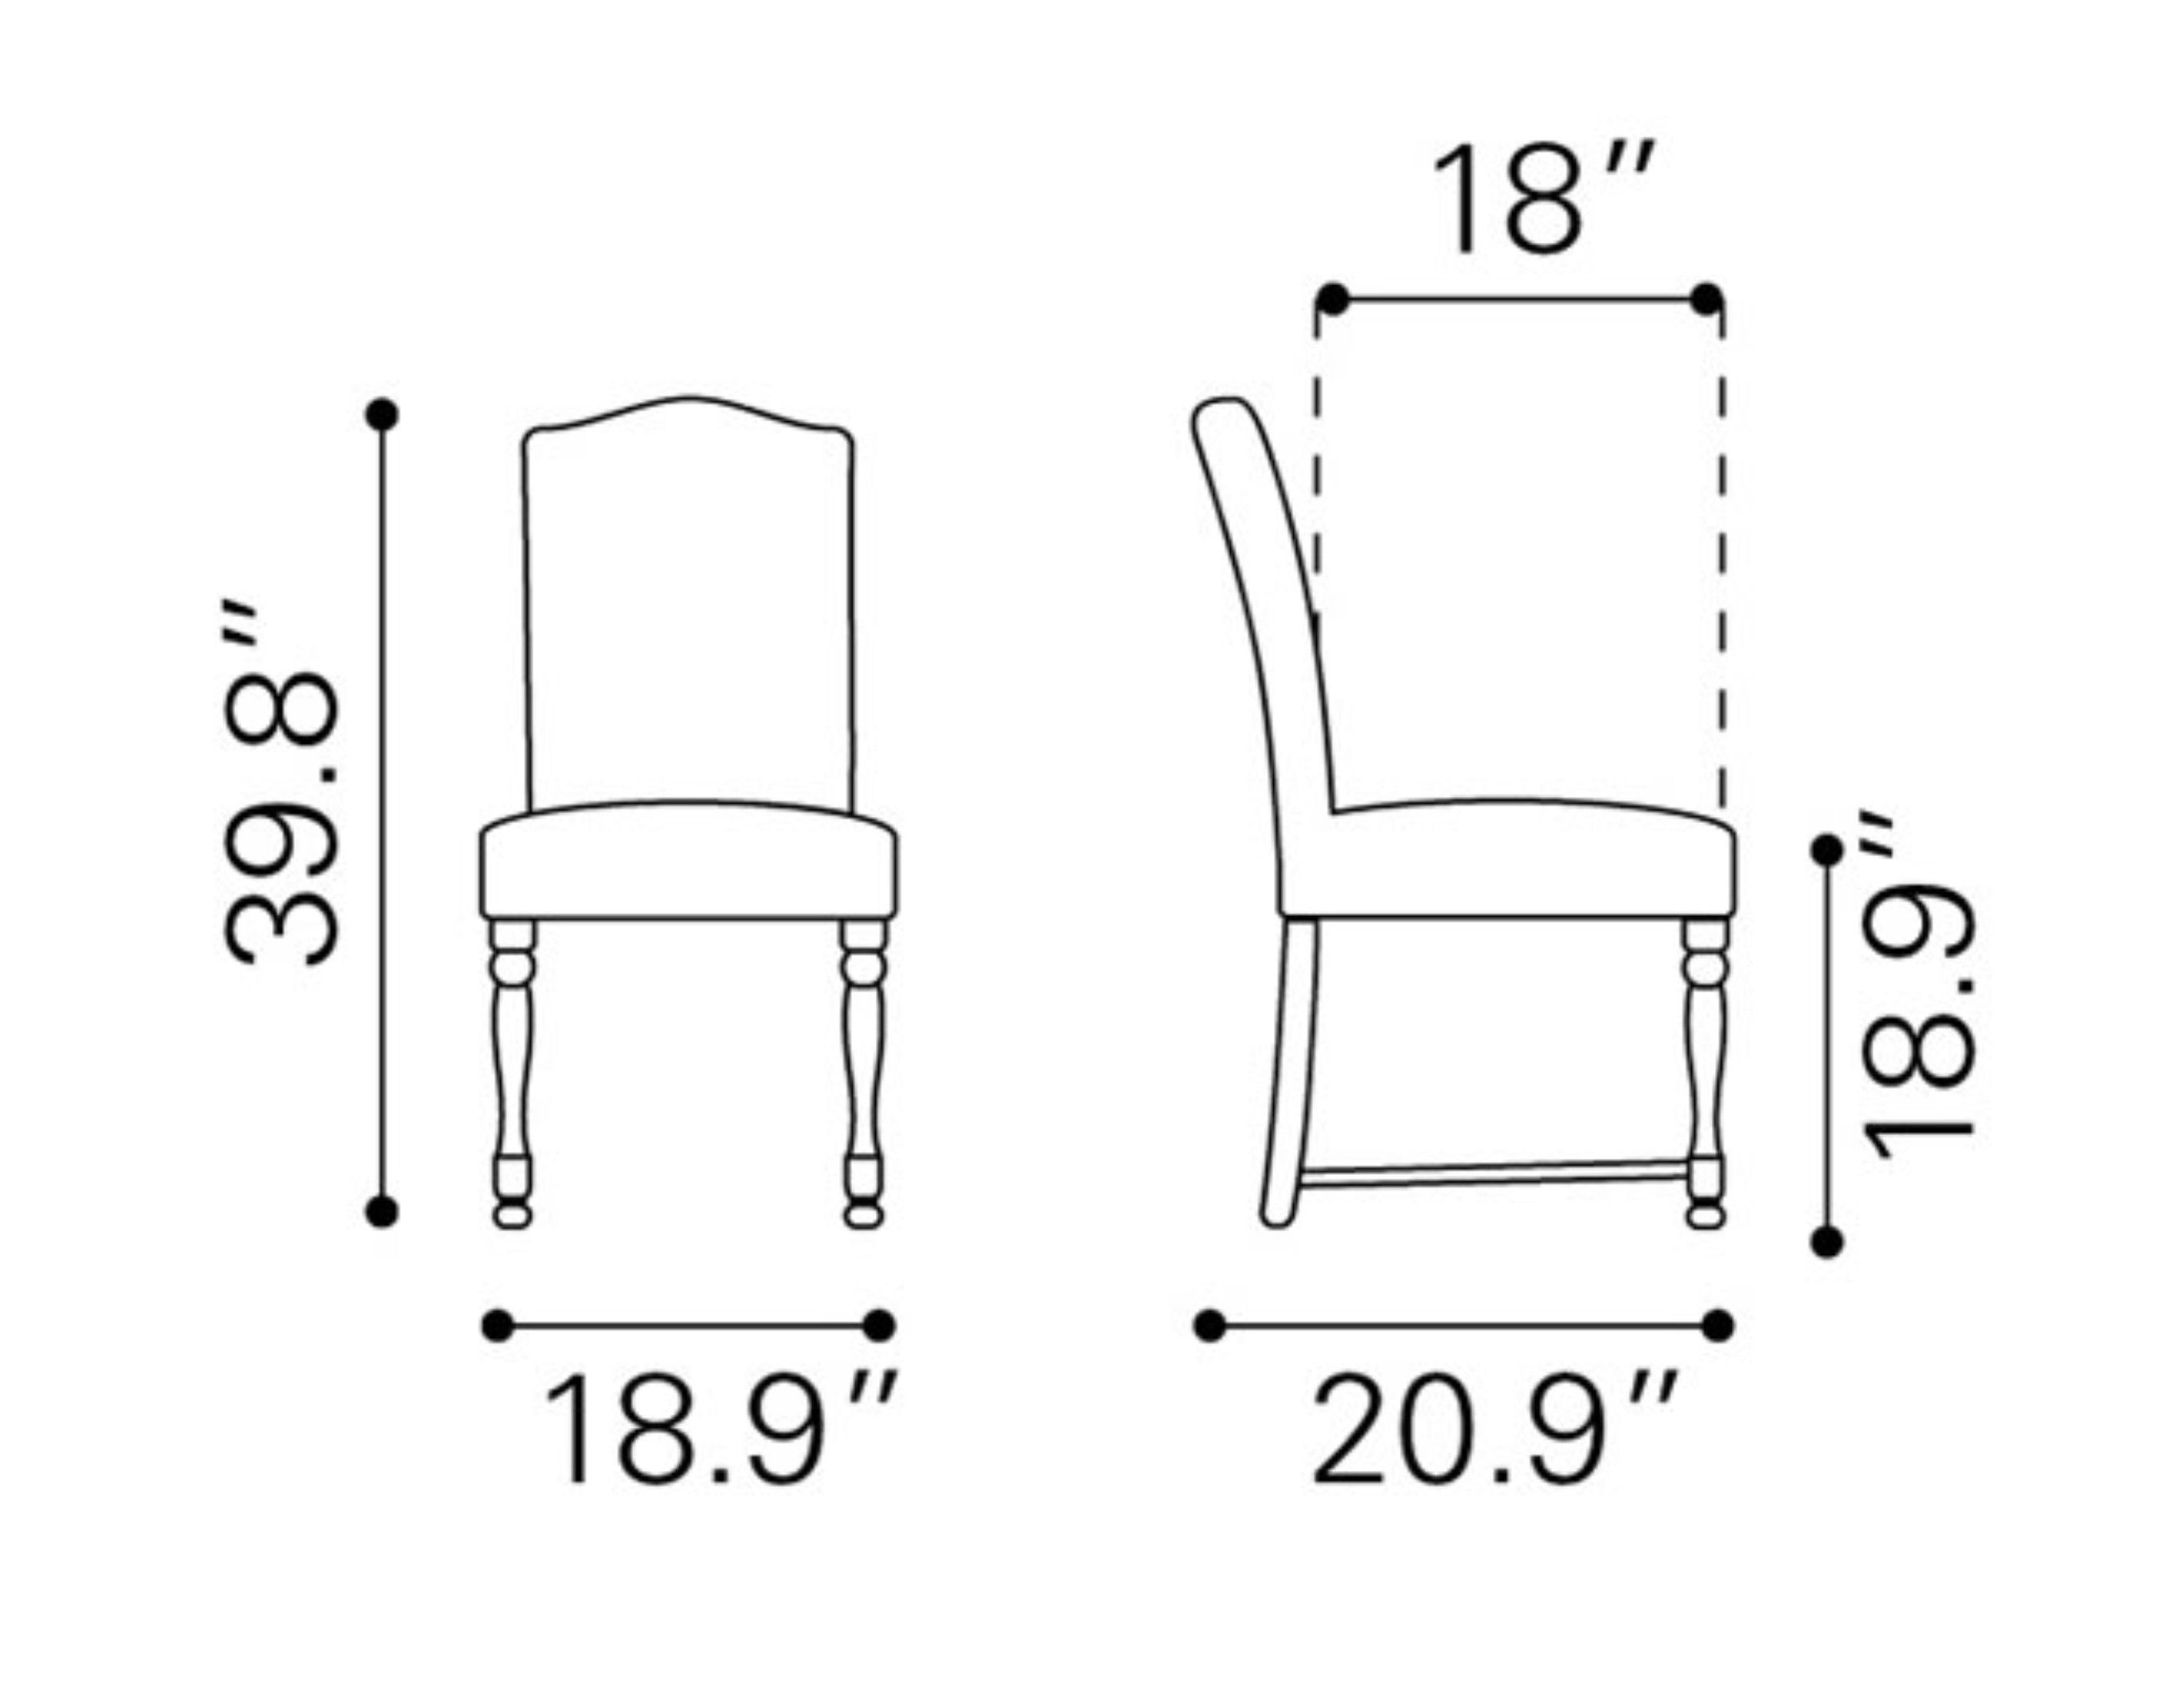 Pin By Deniz Sekeroglu On Blueprint In 2020 Wheelchair Sizes Chairs Logo Bar Stool Height Guide